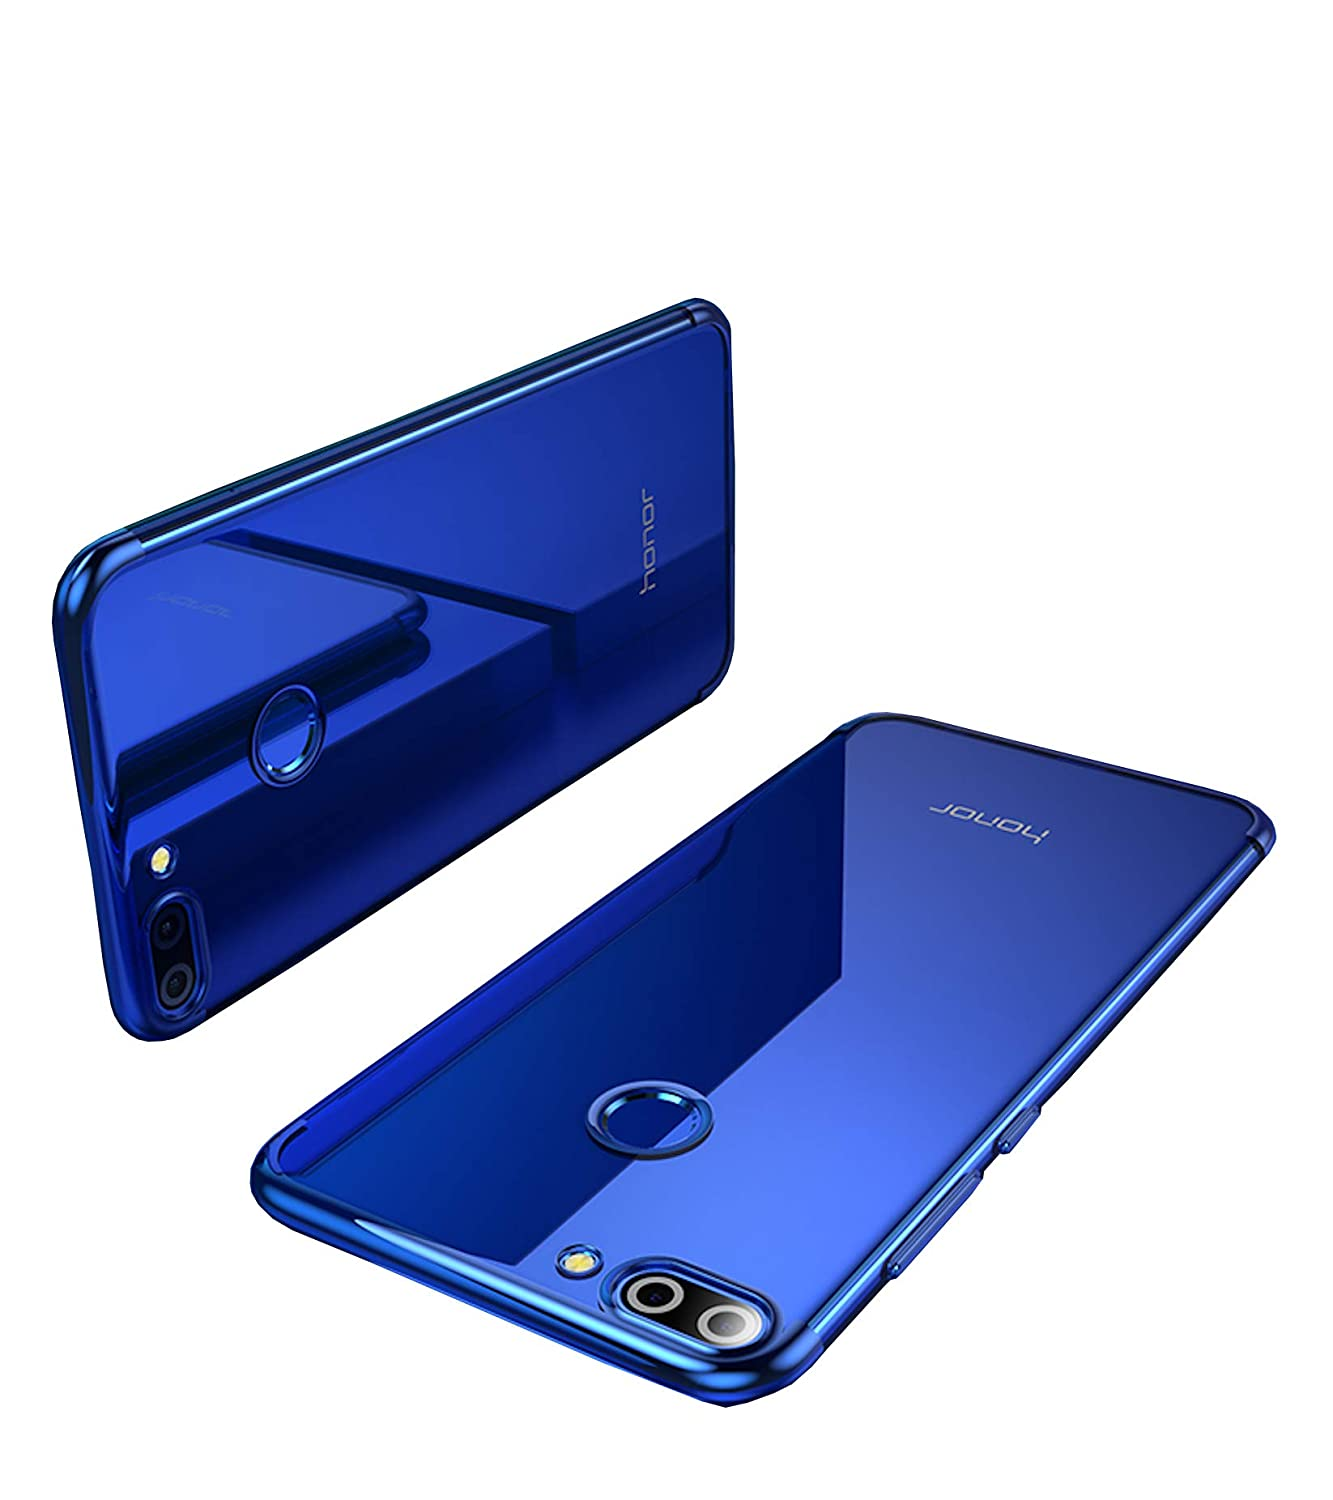 info for c2051 16e4f Bounceback® Huawei Honor 9n Case Shockproof Slim Electroplated Transparent  Soft Back Case Cover for Honor 9n - Clear Blue